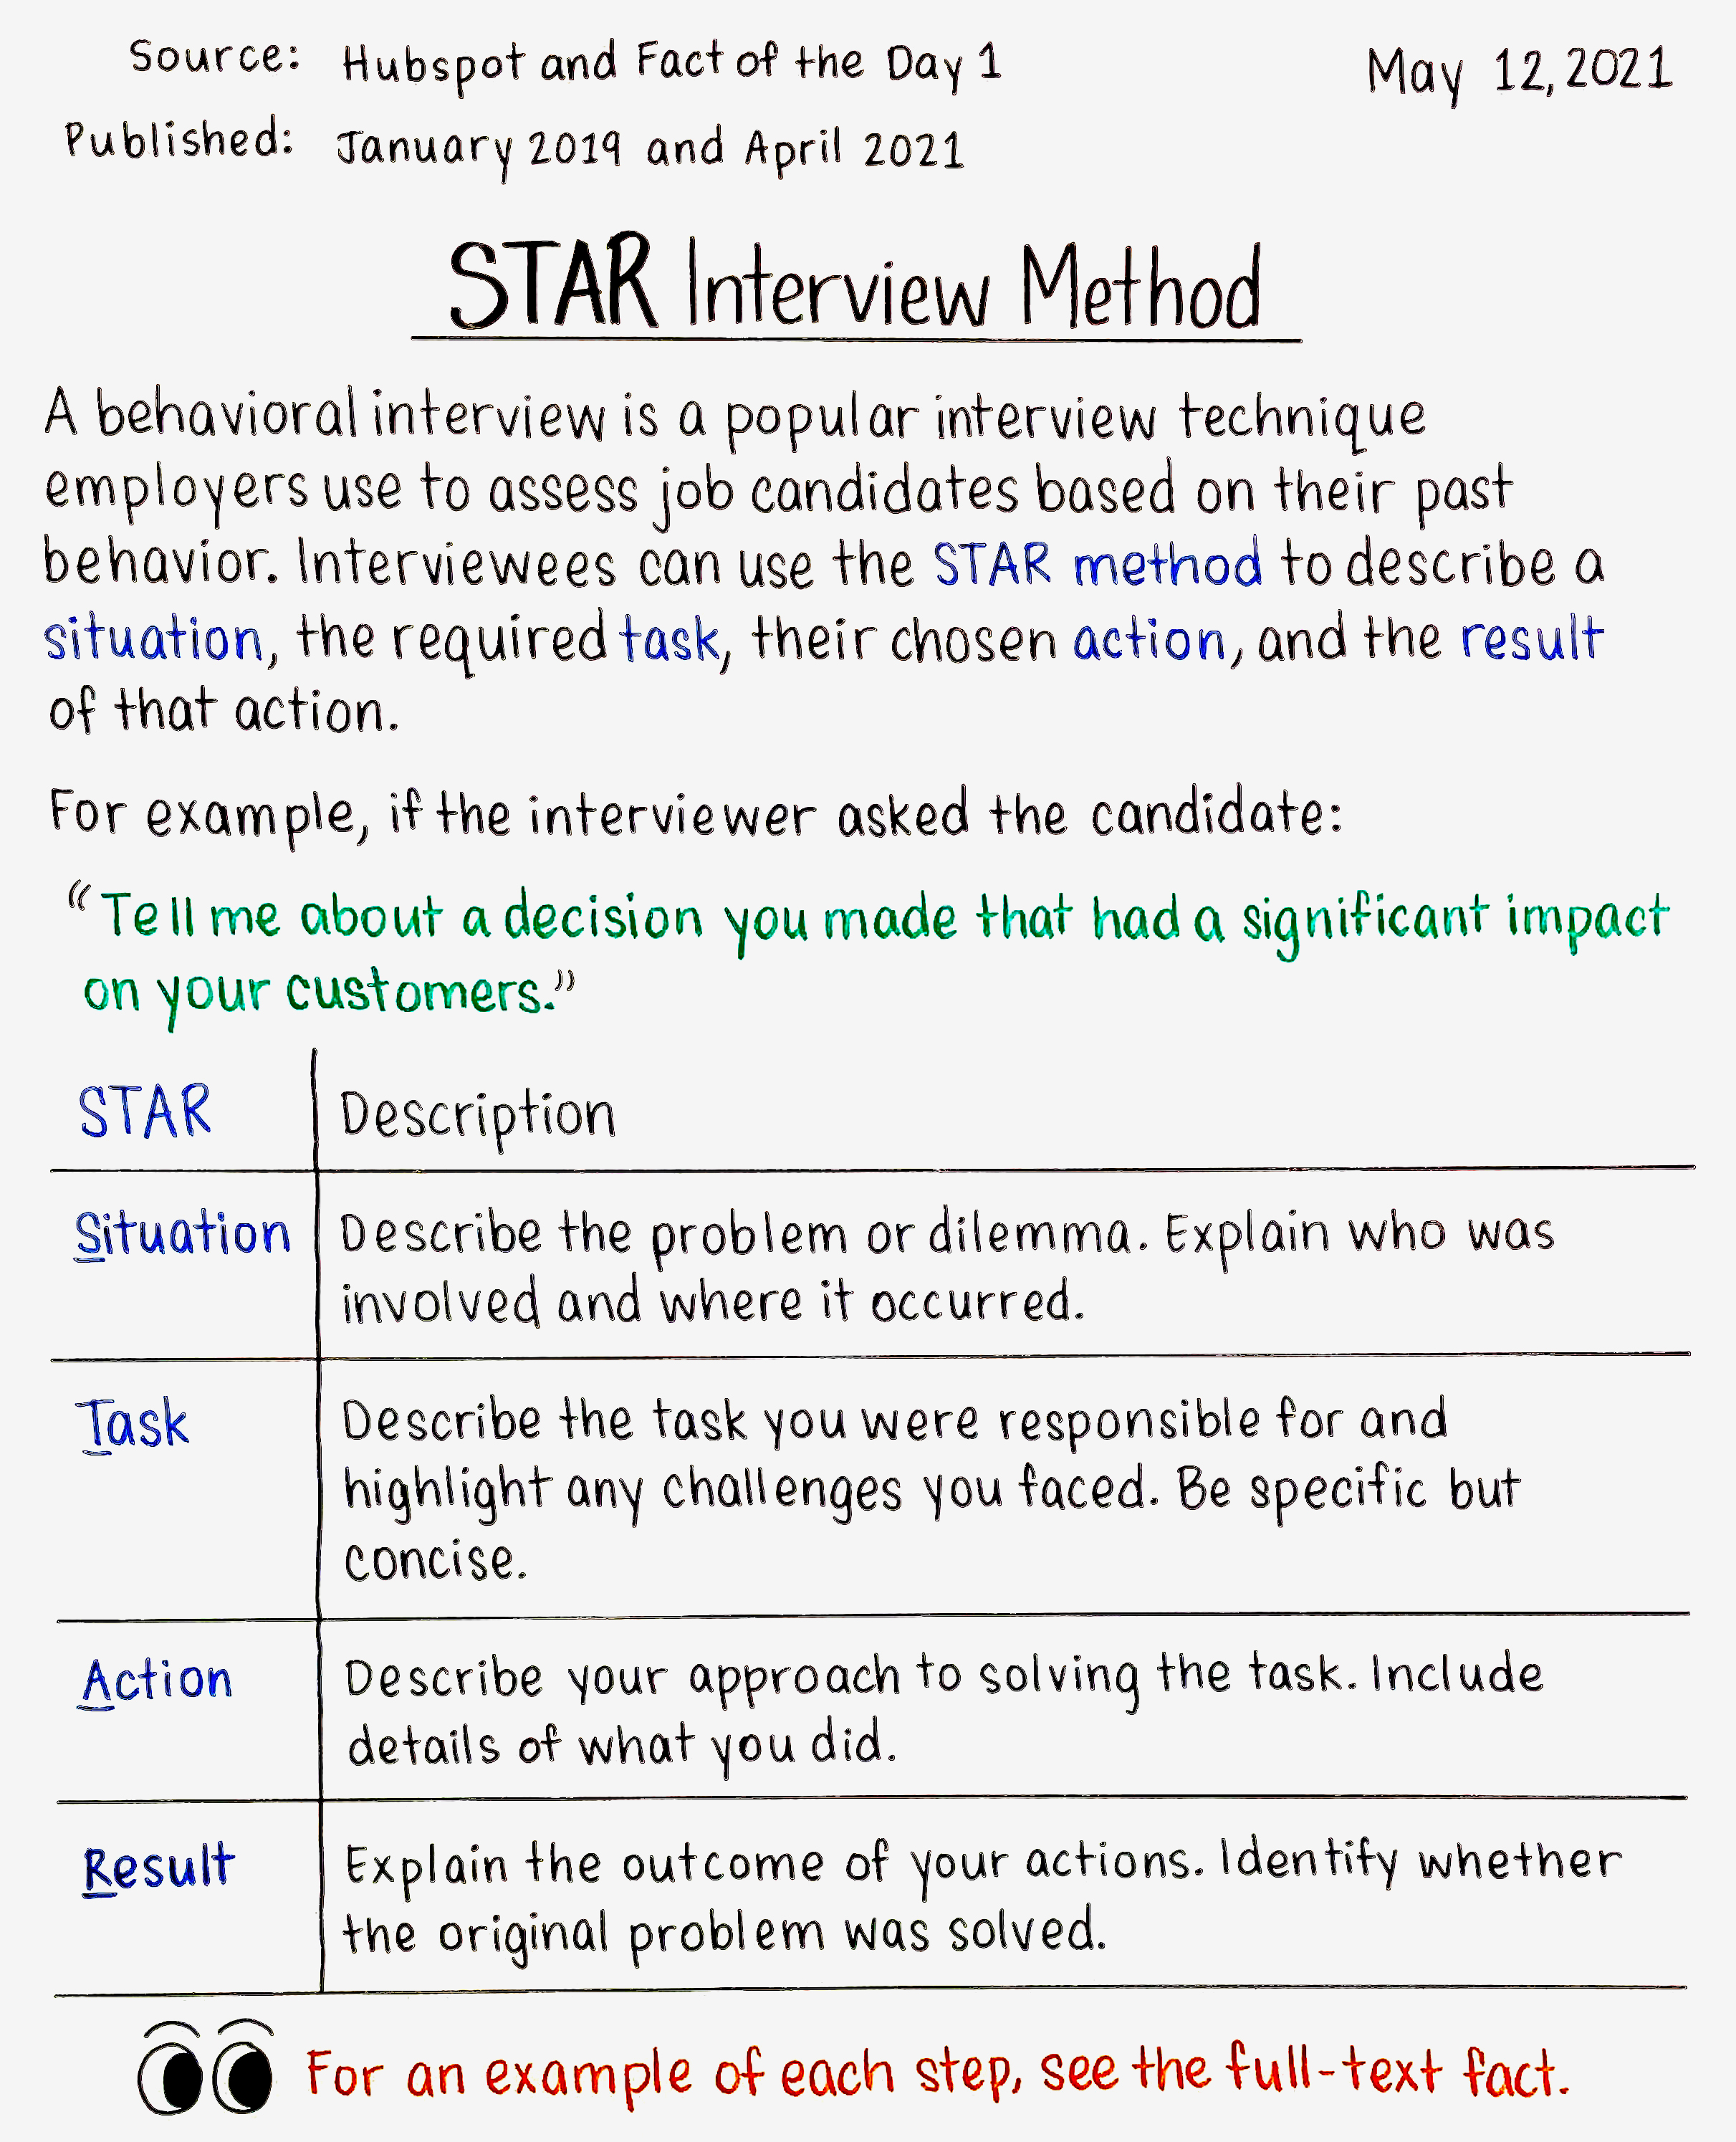 STAR Interview Method